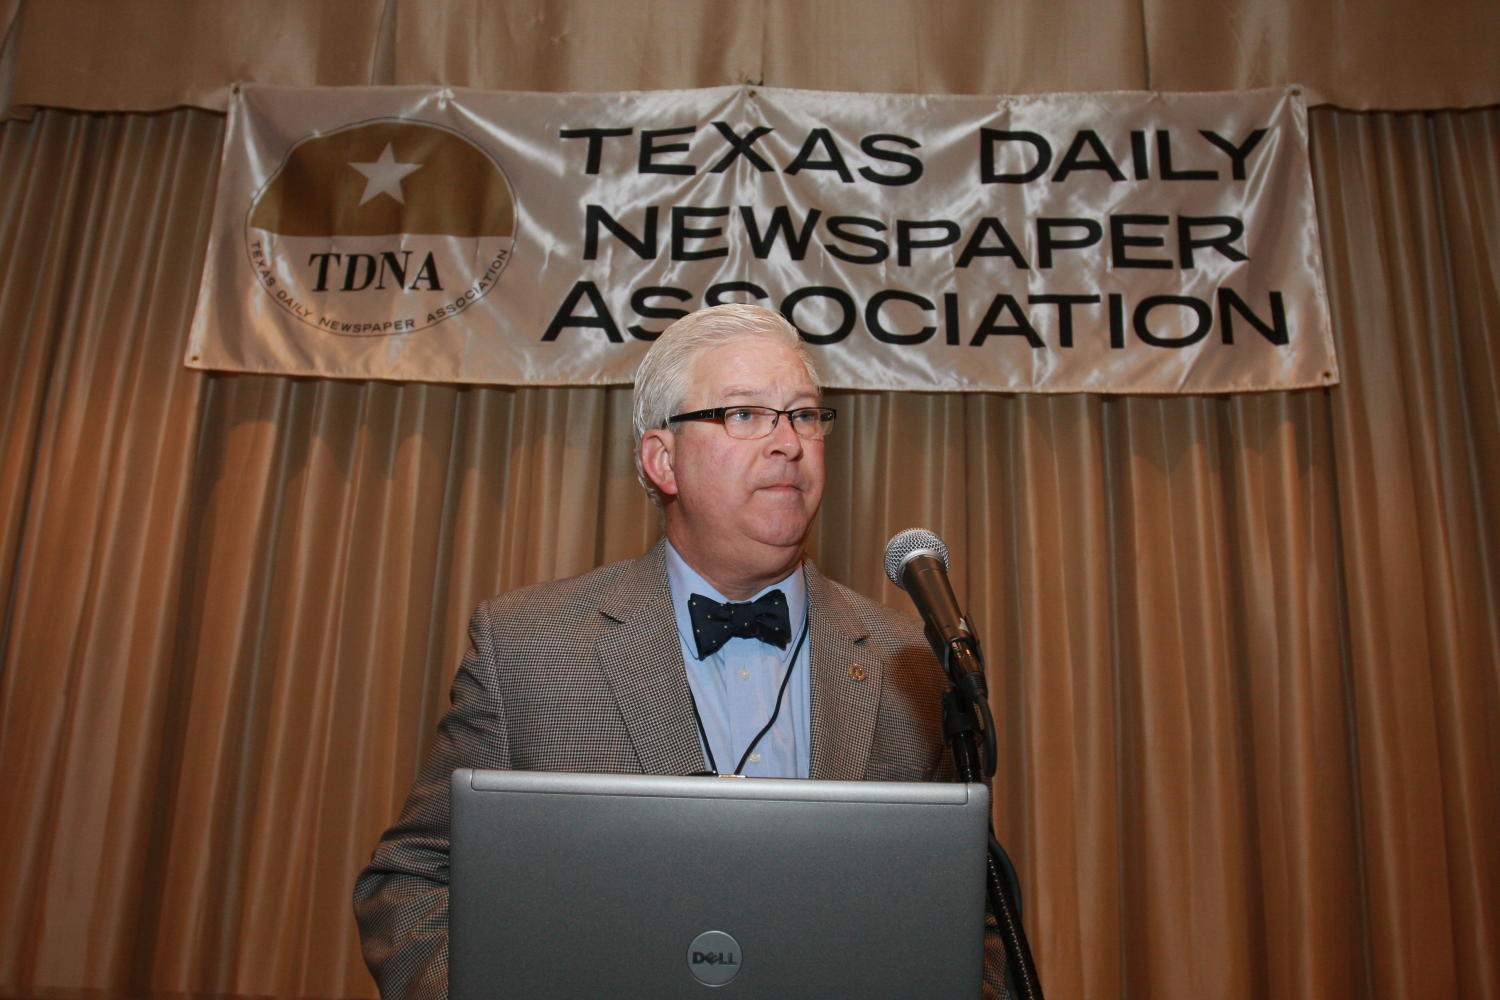 [Patrick Canty giving presentation at a TDNA conference], Photograph of Patrick Canty standing in front of a podium, with a laptop open before him, as he leans forward to speak into a microphone during the 2010 Texas Daily Newspaper Association annual meeting held in Houston, Texas.,